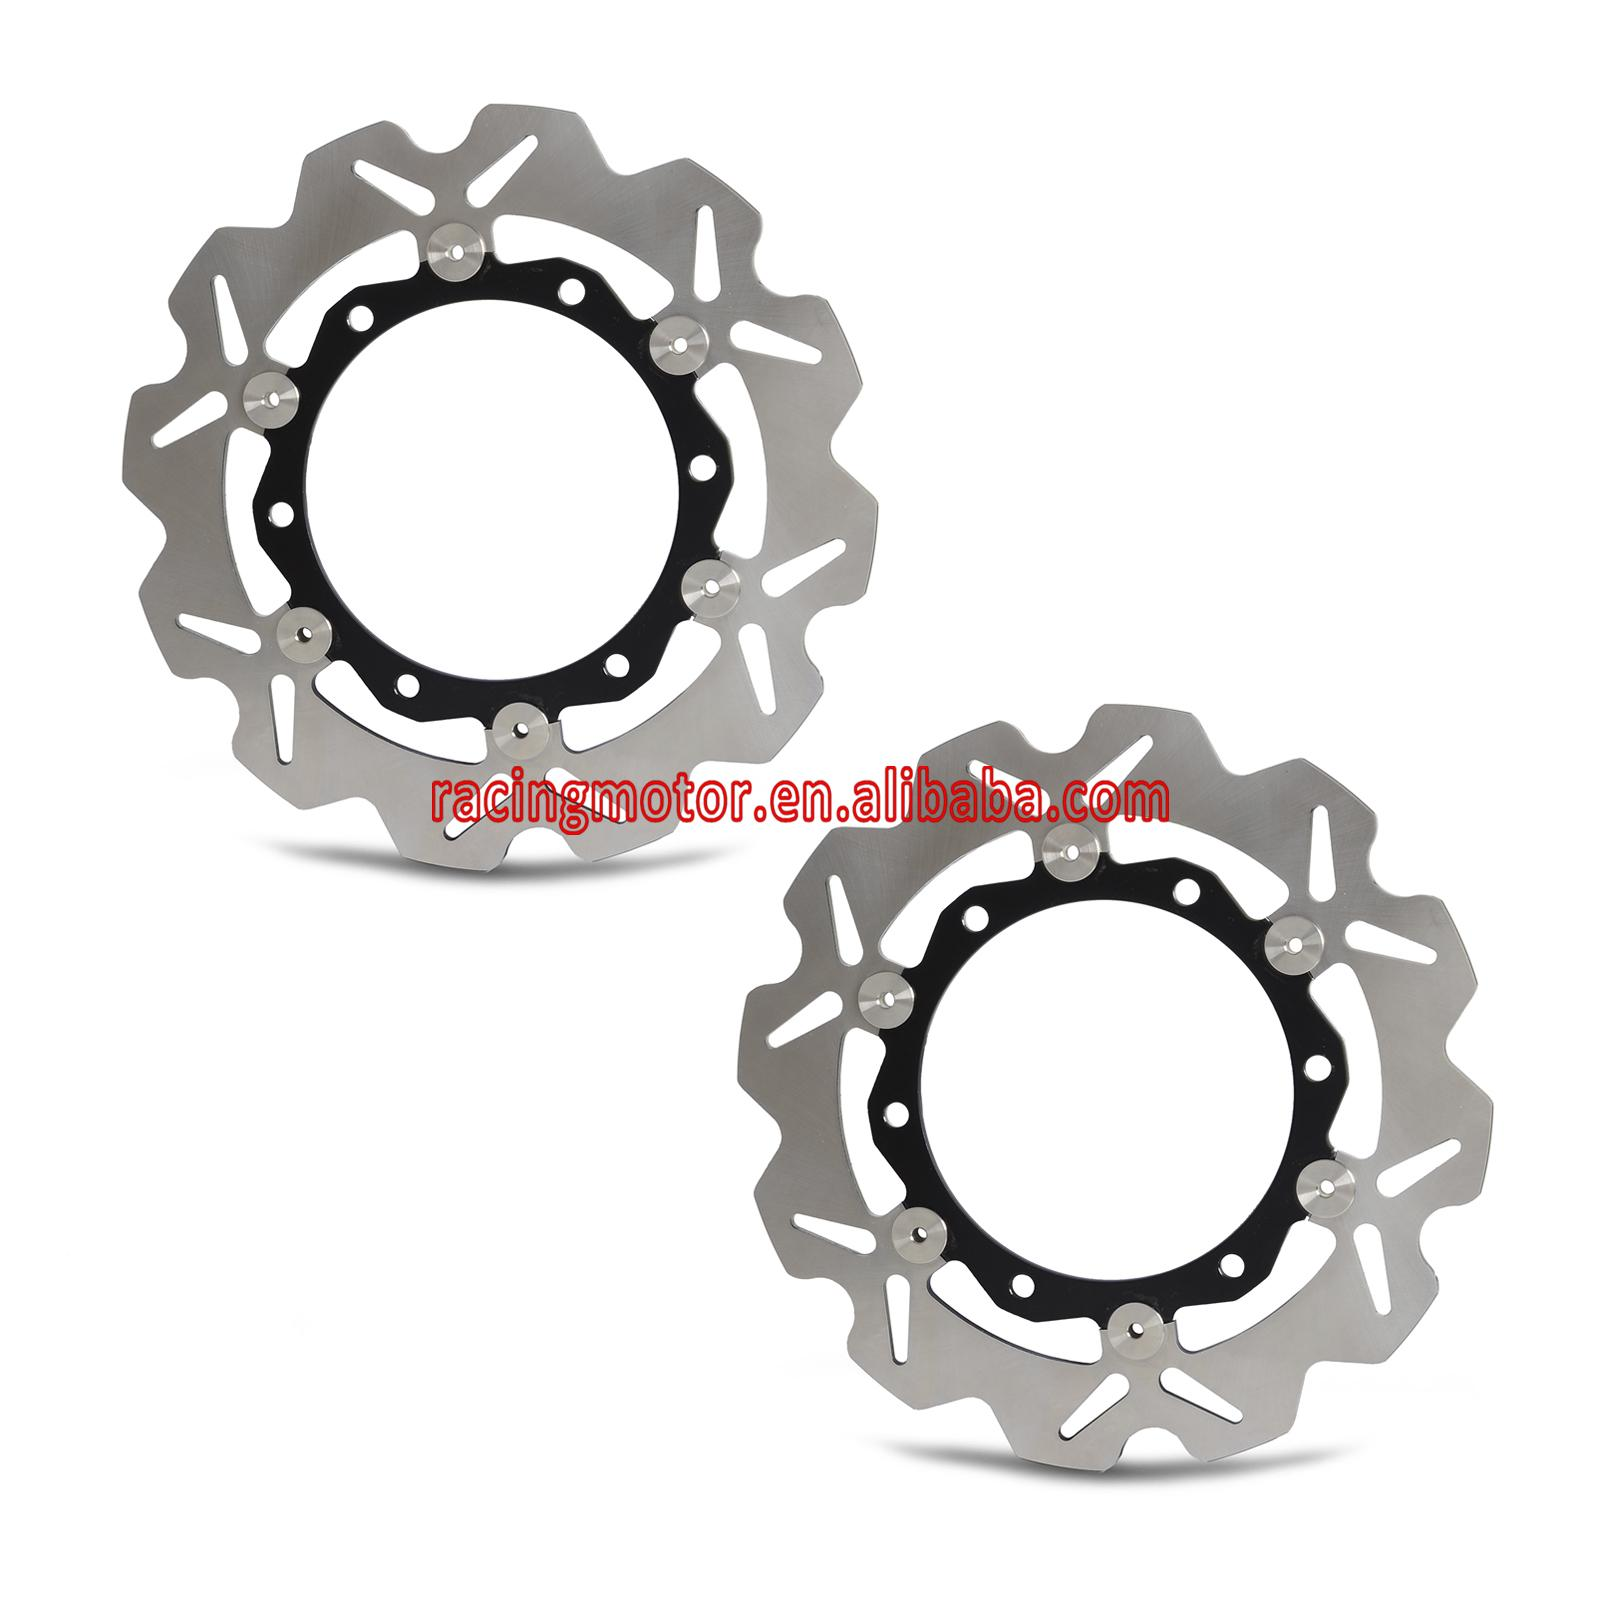 New Motorcycle Front  Rotor Brake Disc For Yamaha XP 500 T-Max  XP 530 Black Max (59CE) 13-14 xp t max 500 01 11 motorcycle rear brake rotor disc for yamaha tmax500 xp500 2001 2011 xp t max 500 abs 2008 2009 2010 2011